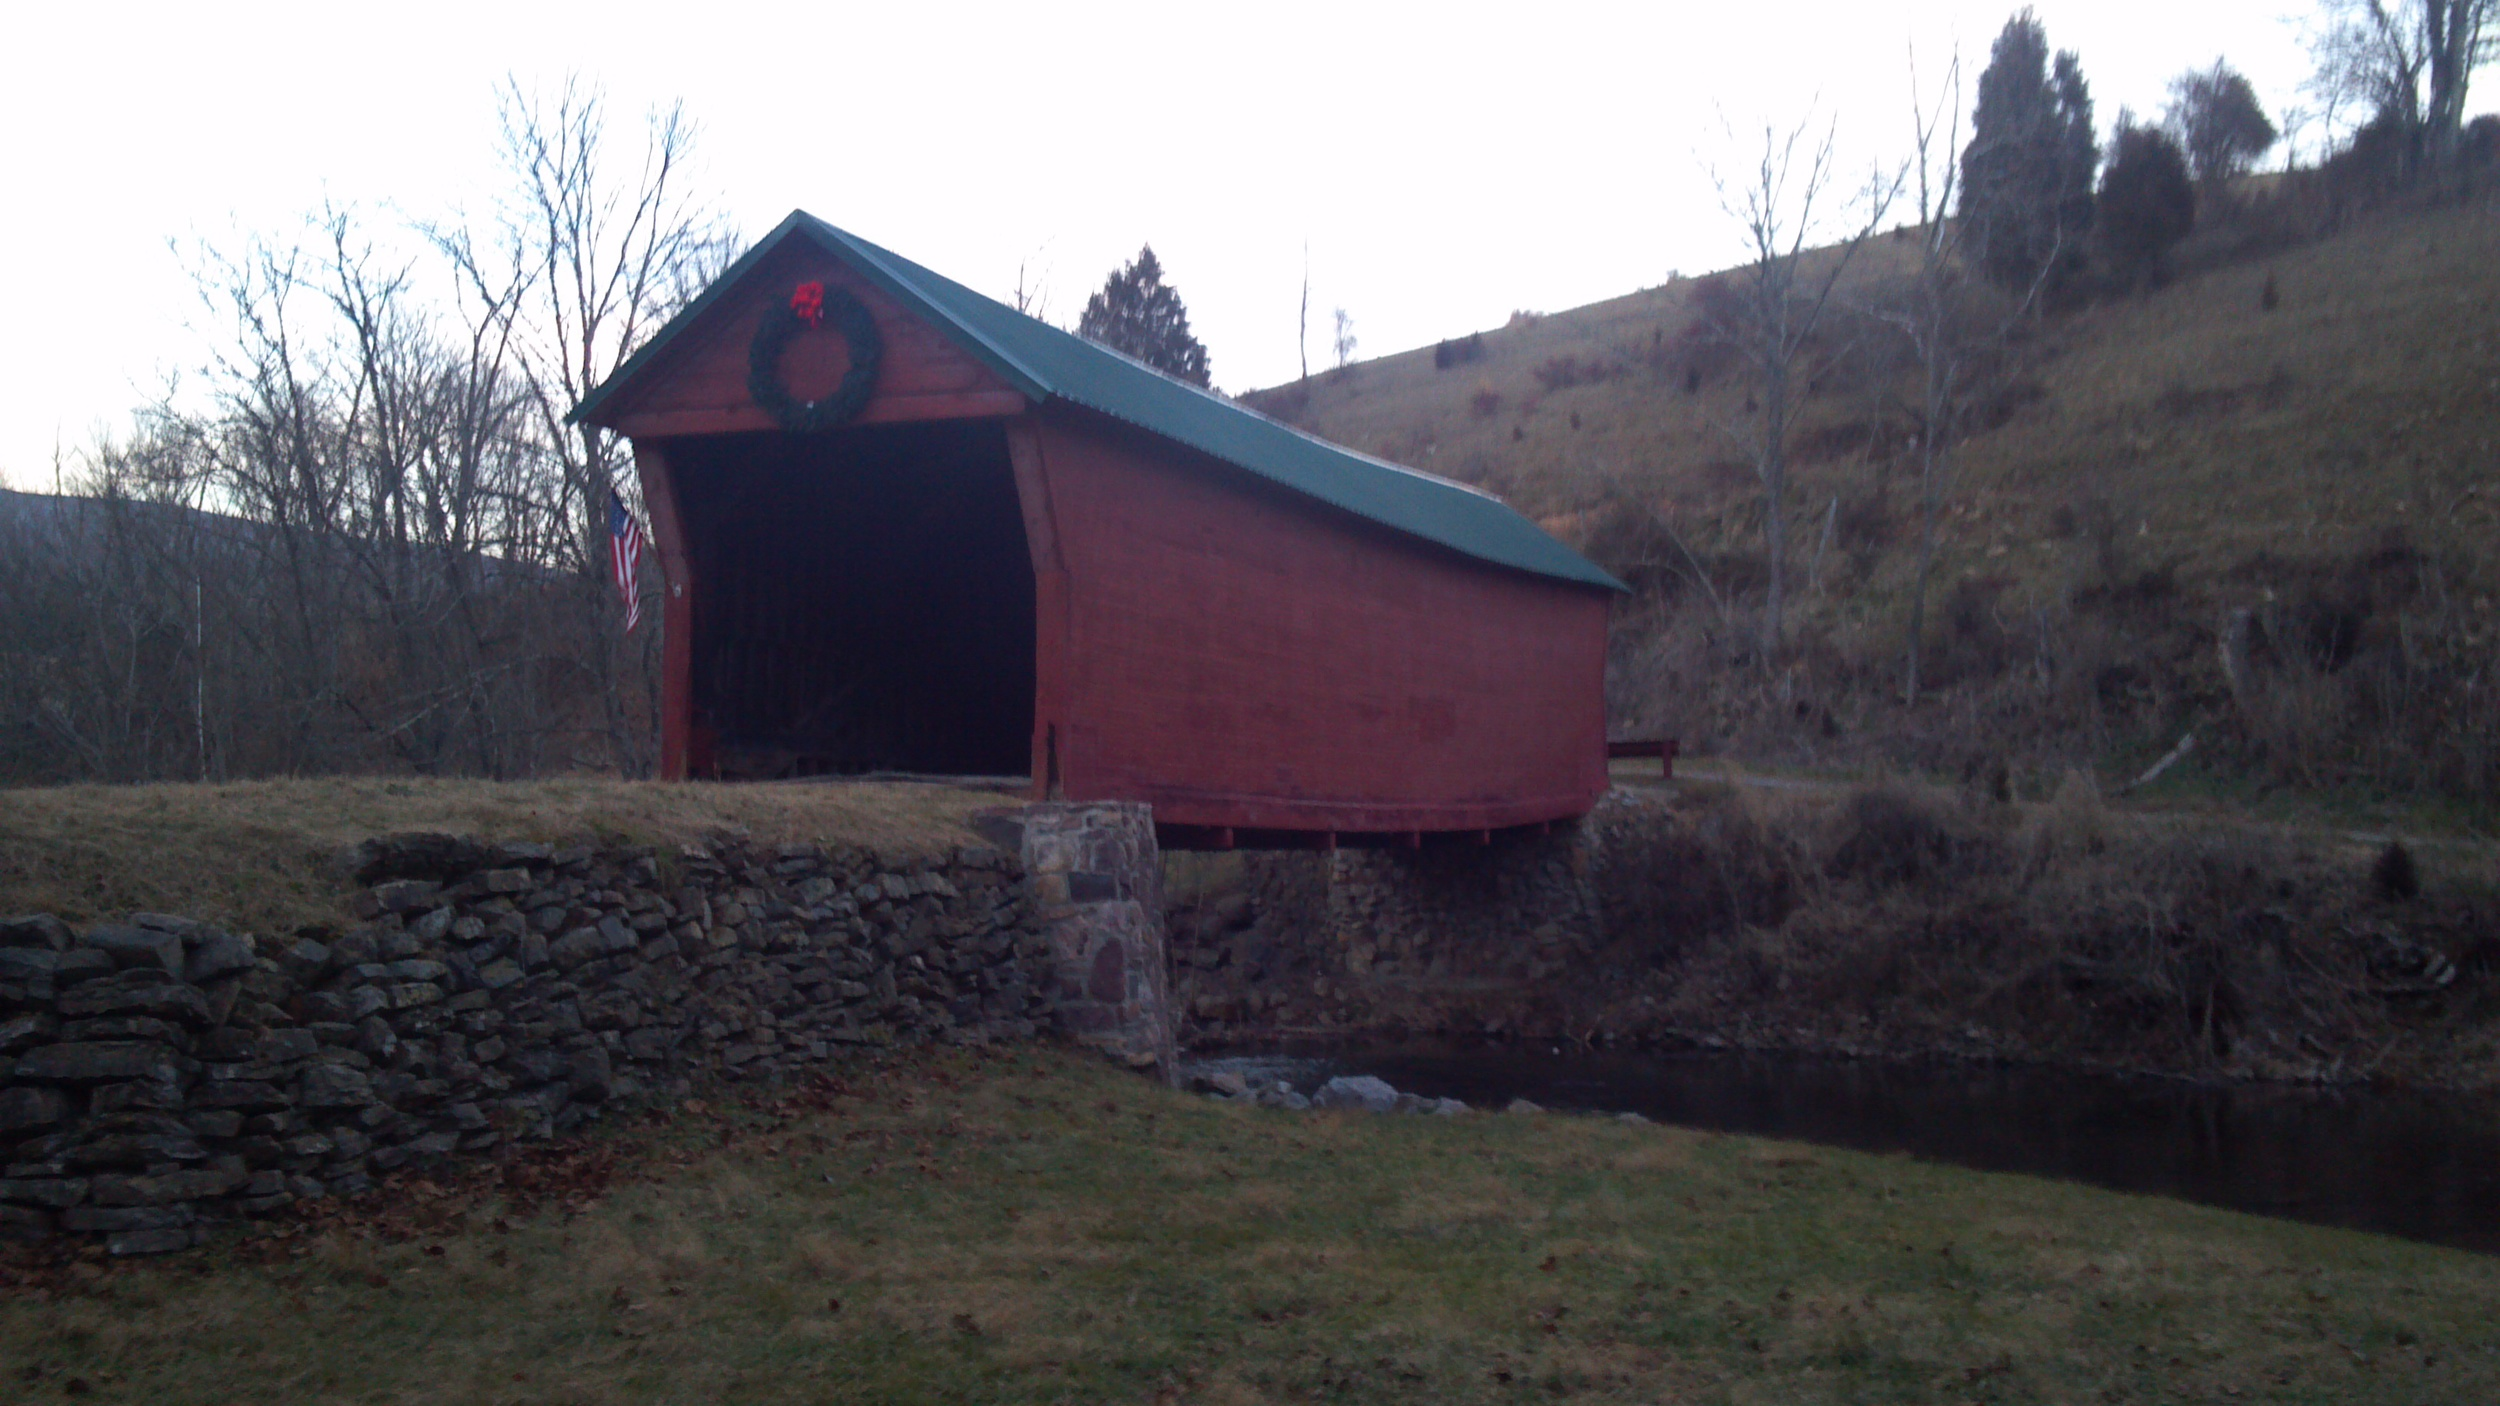 Sinking Creek Covered Bridge in Giles County, Virginia